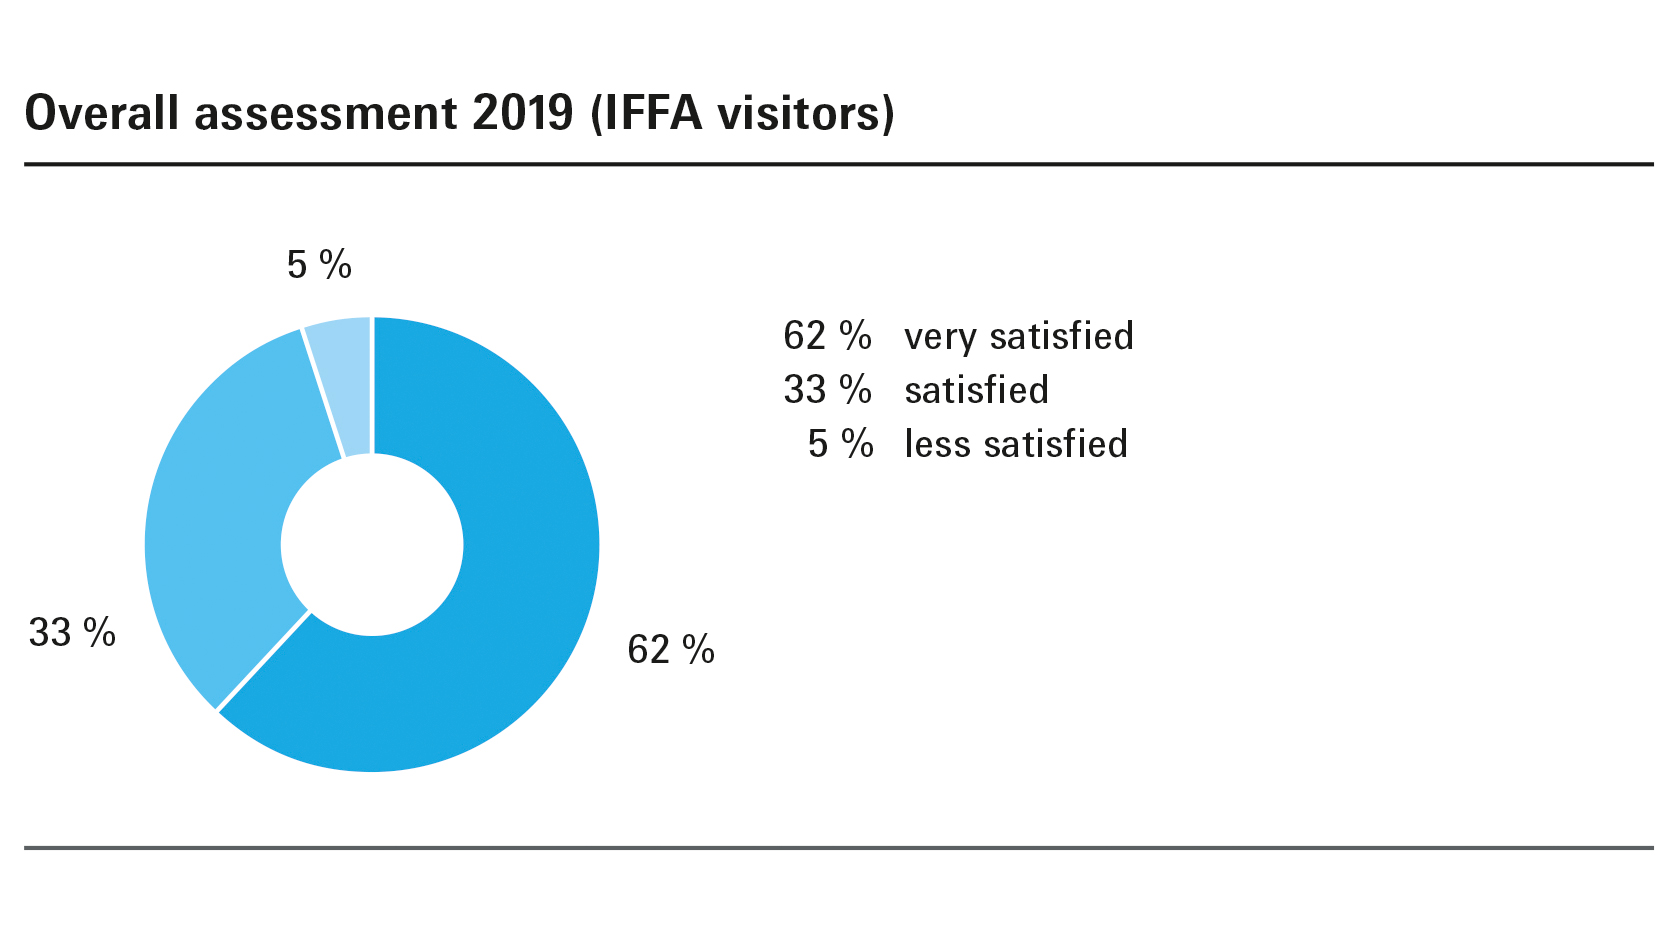 Overall assessment 2019 (IFFA visitors)